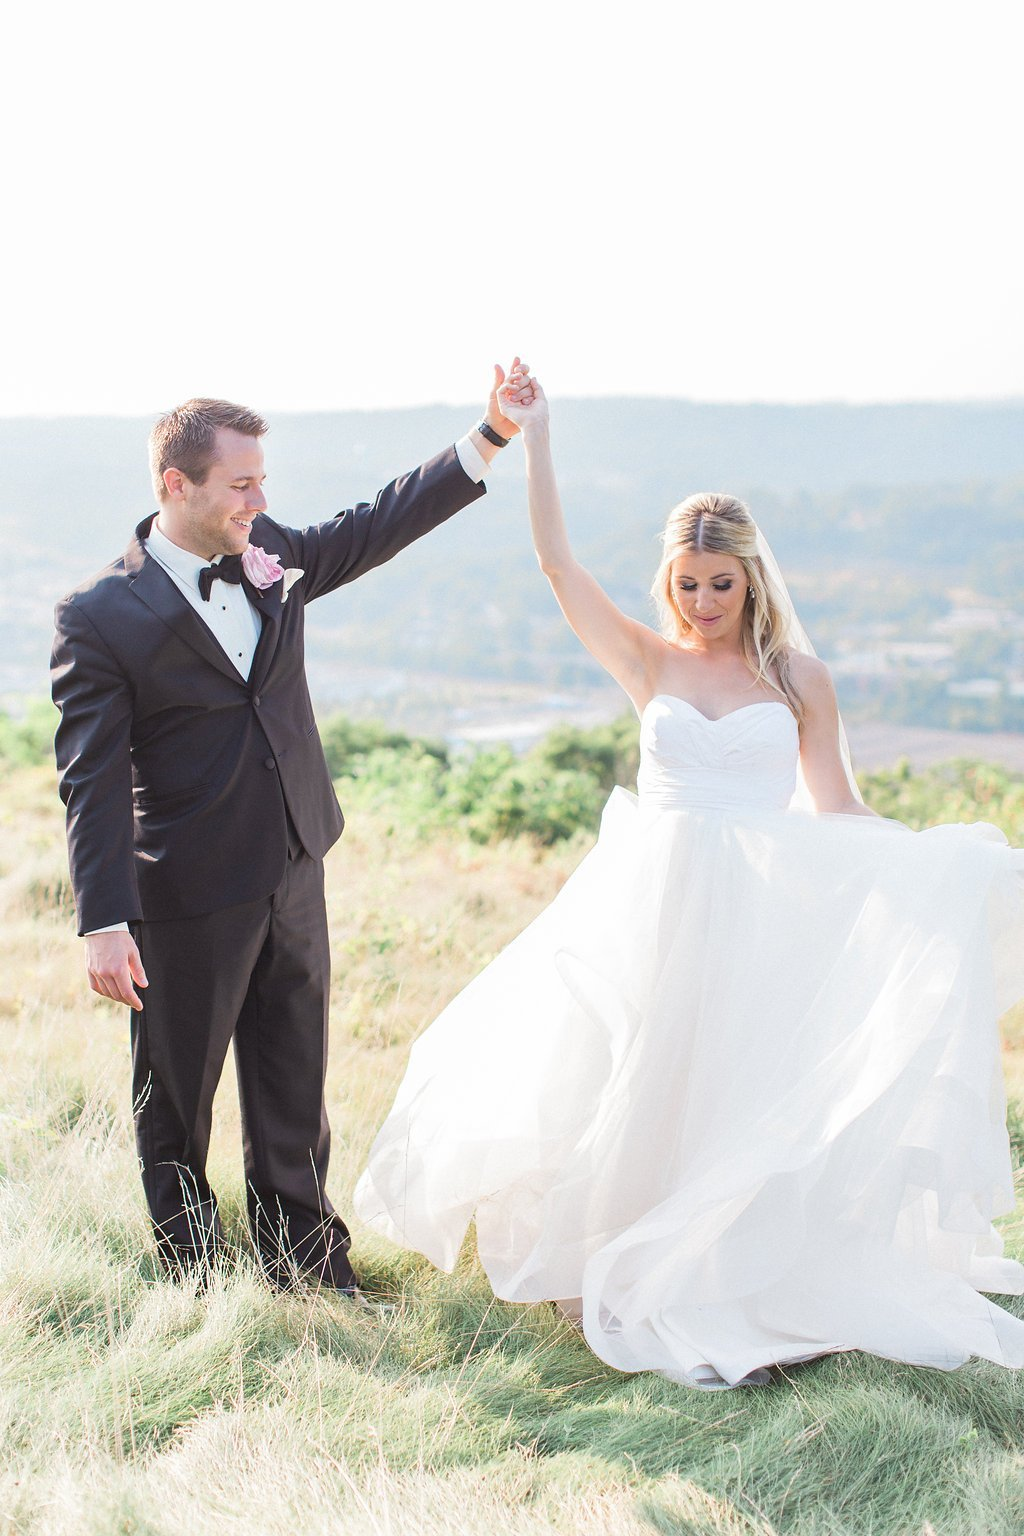 Bride and groom dancing together in a field